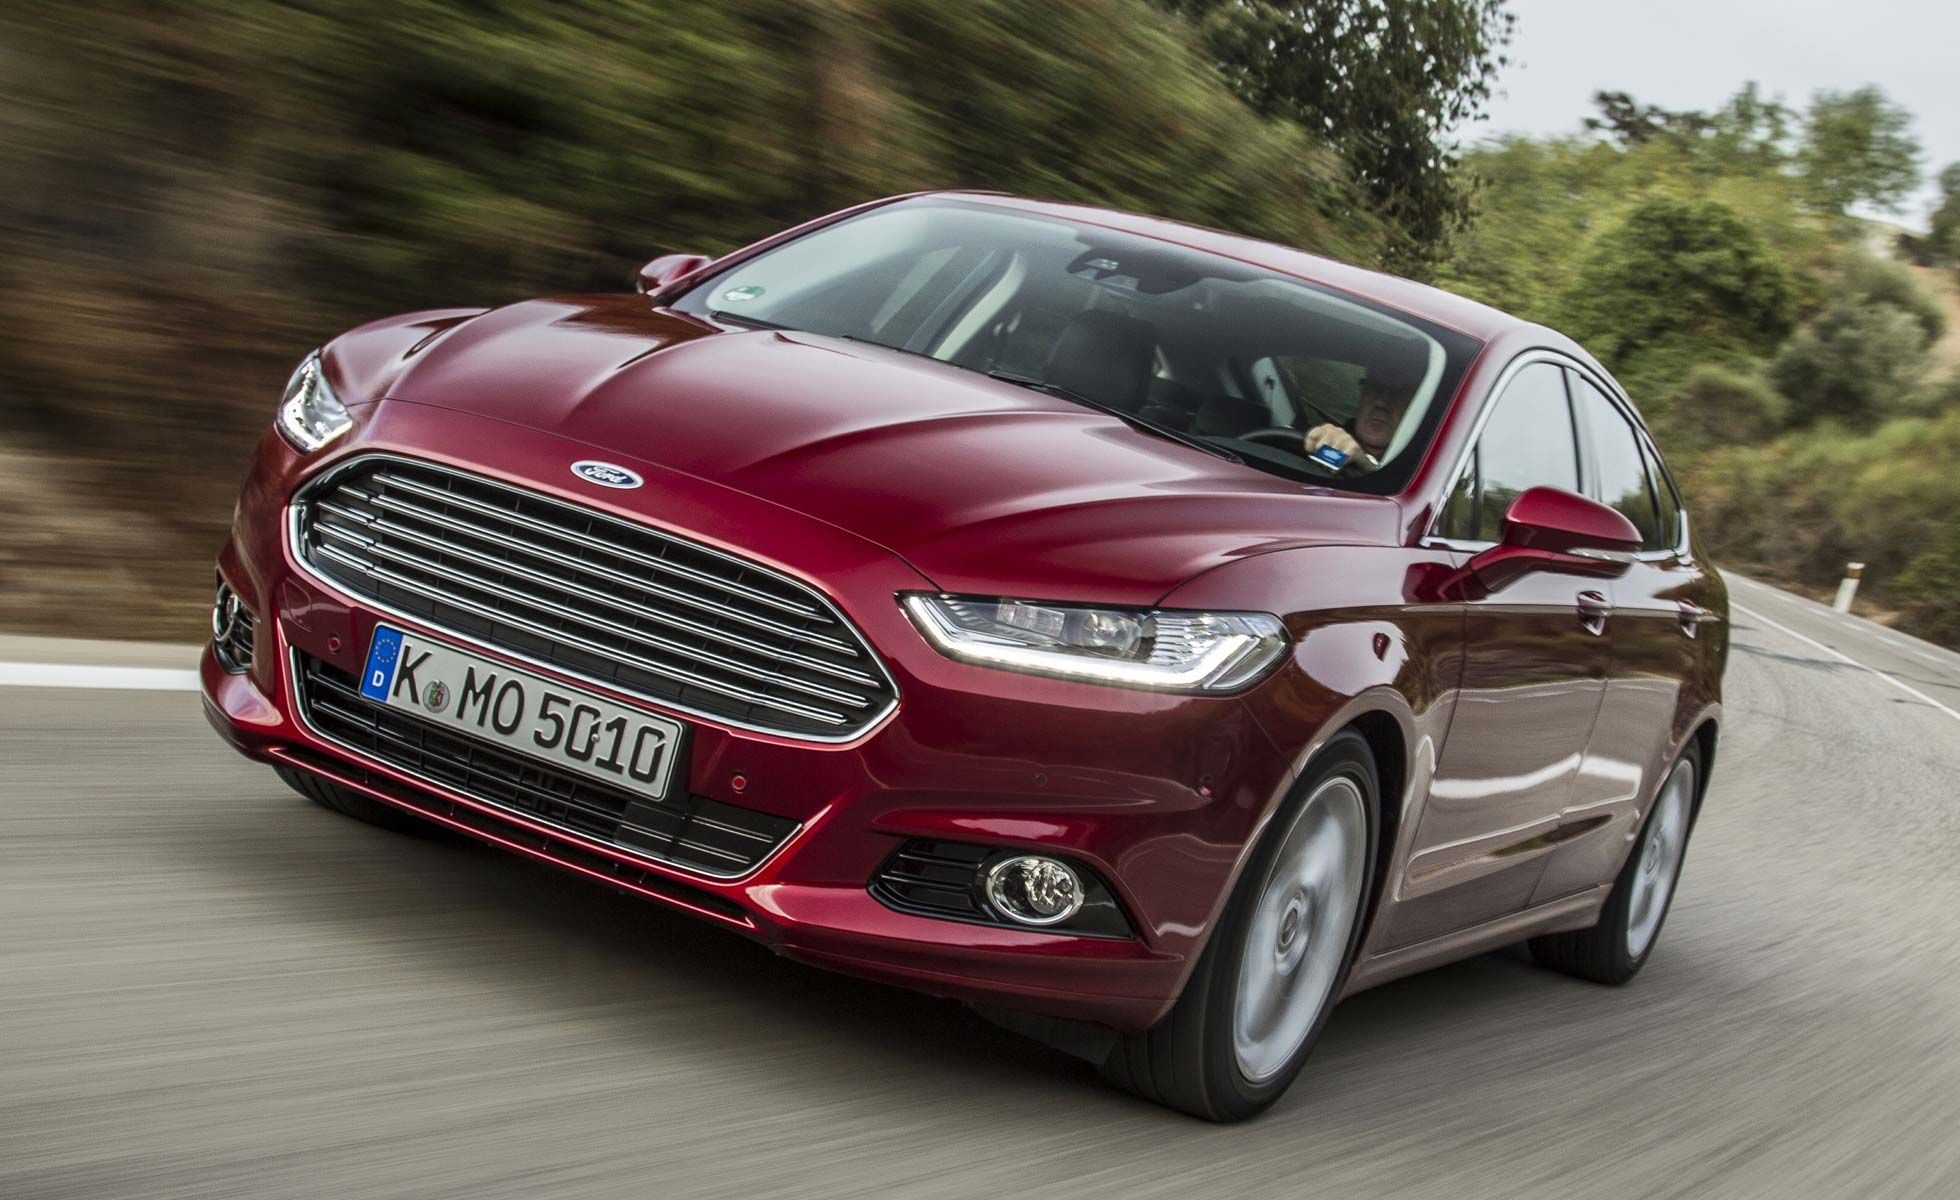 So this time the 2016 ford mondeo is a model that is likely to bring refreshments